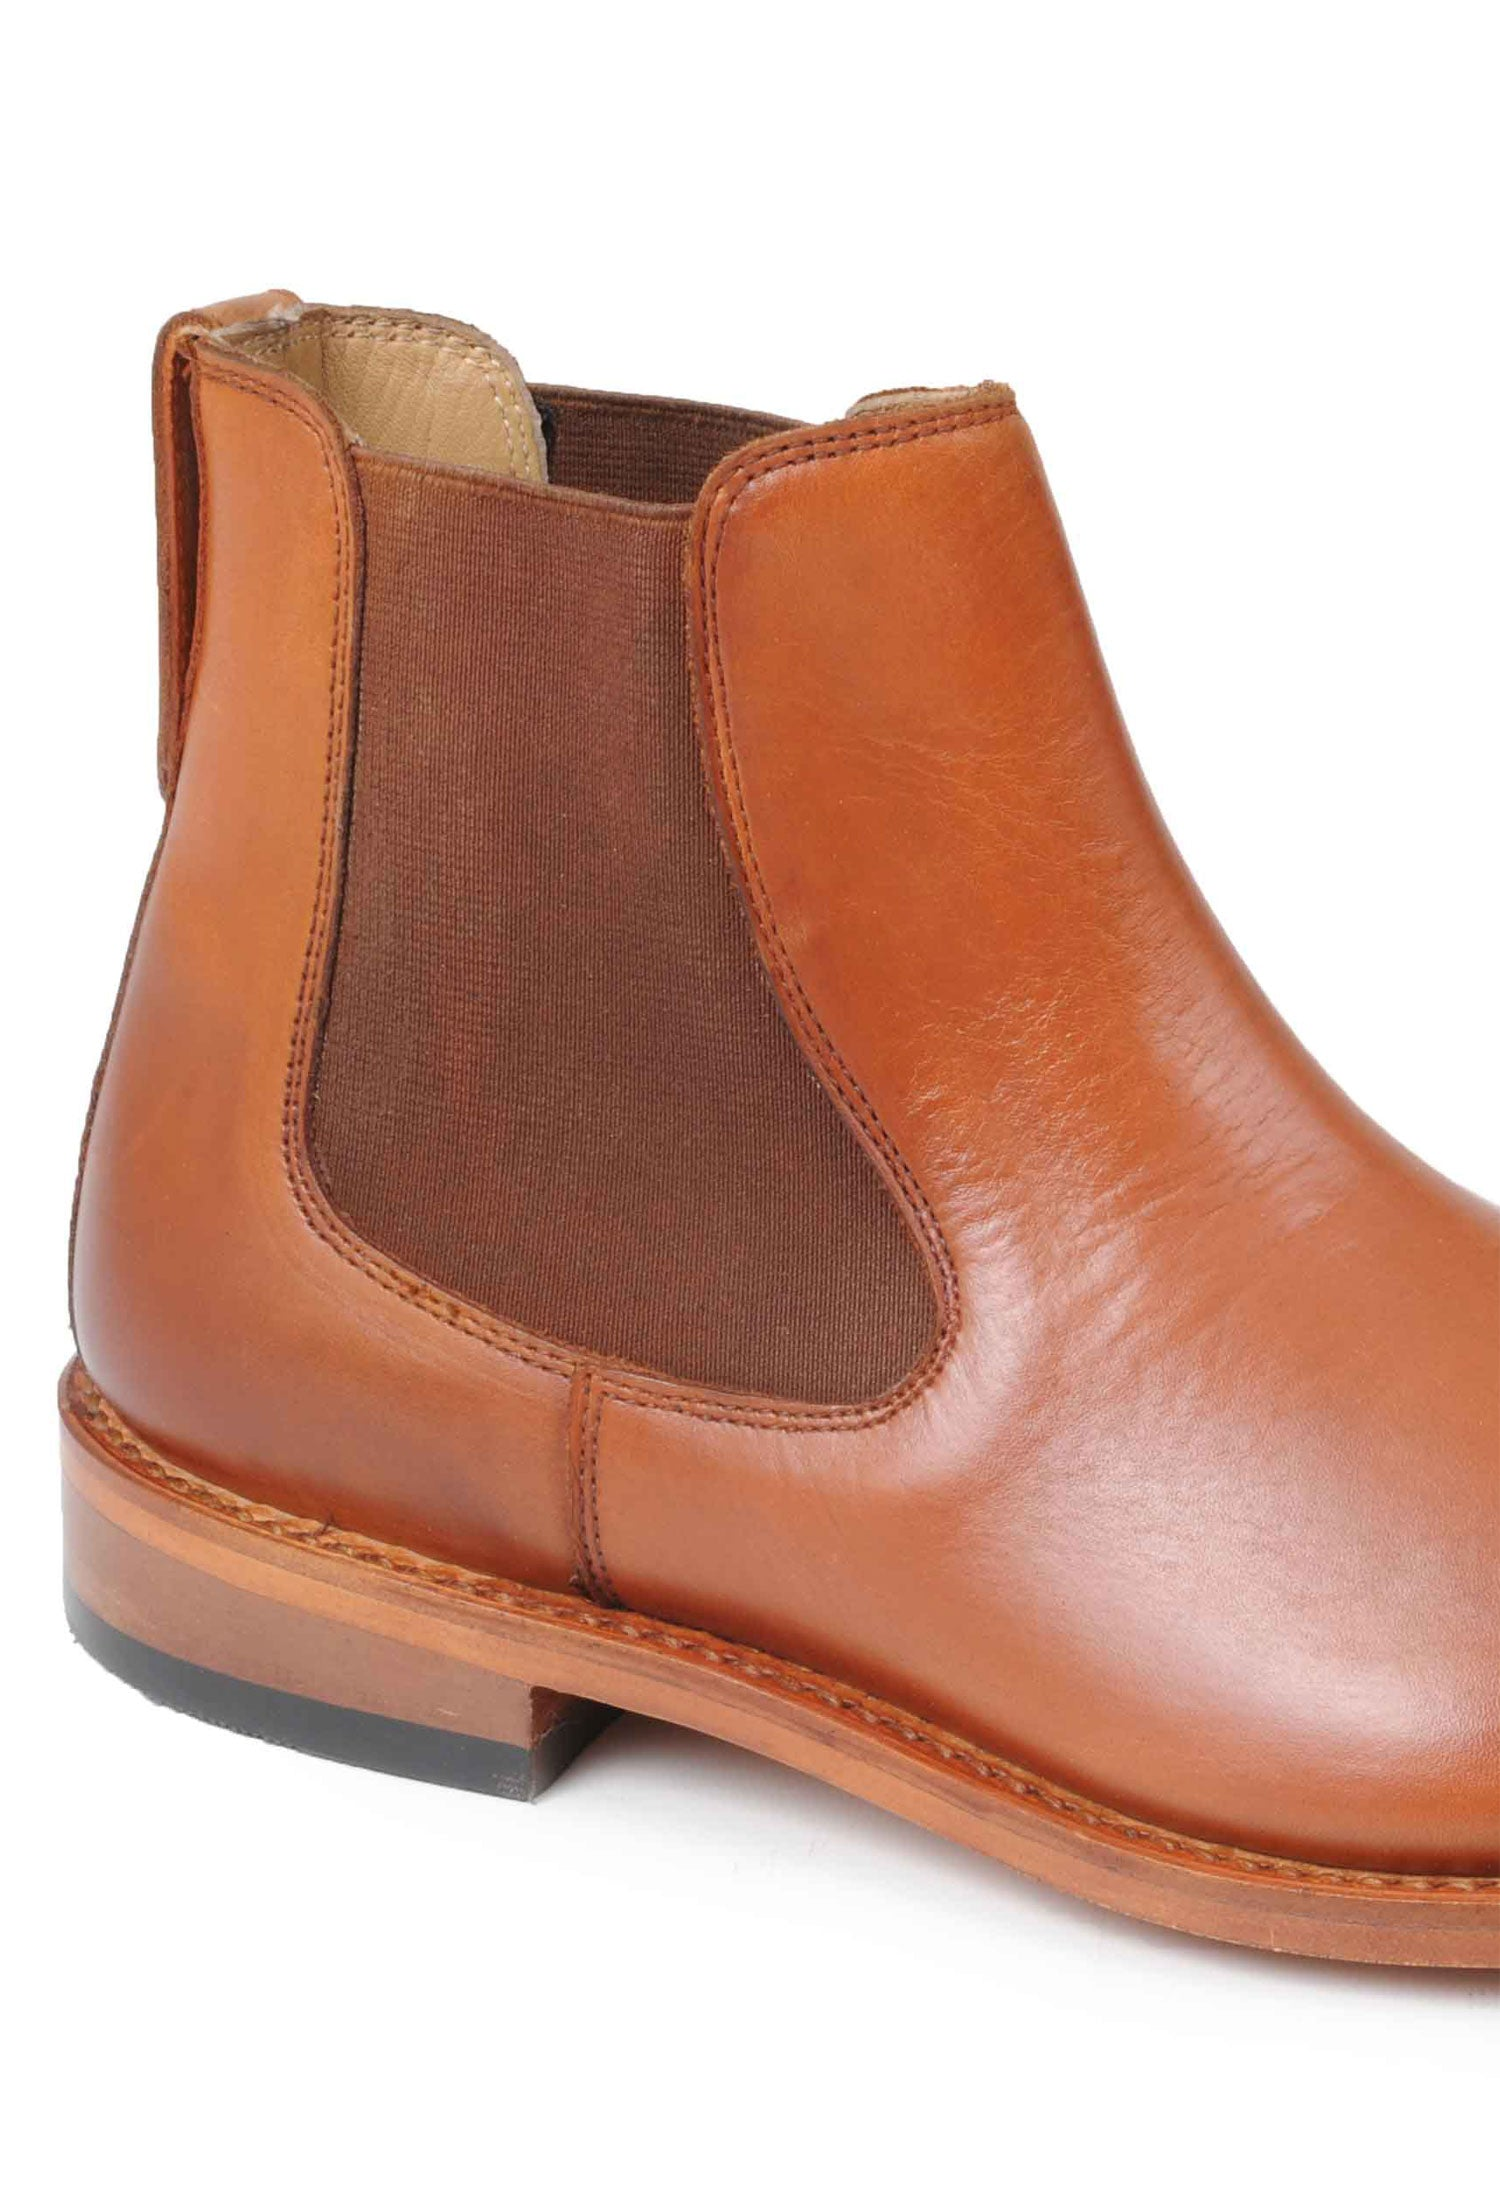 043c3cabfa9 Catesby Tan All Leather Dealer Boot – Hollands Country Clothing